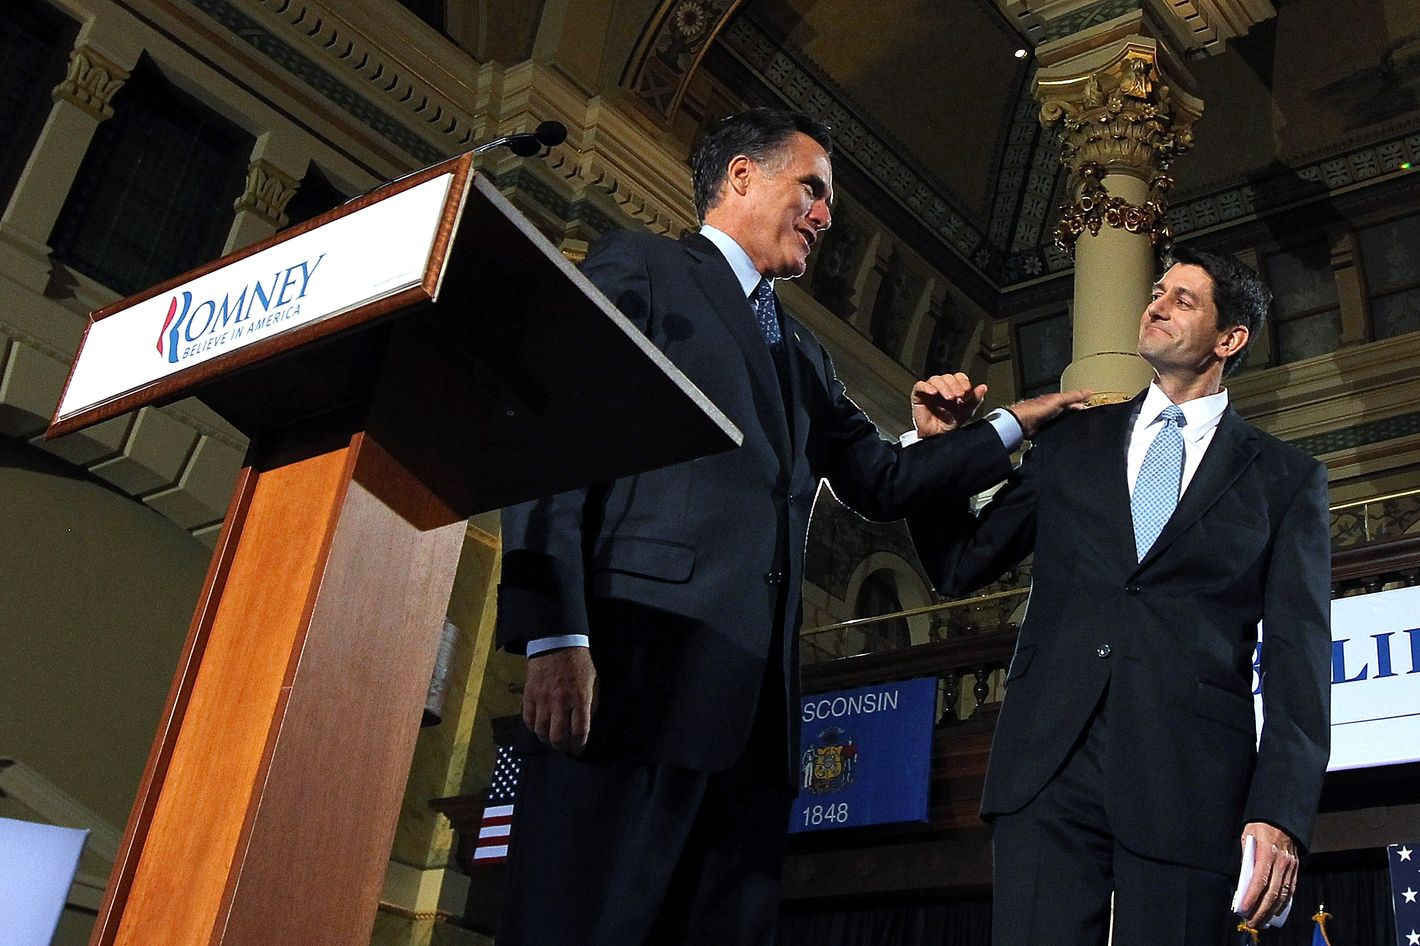 Republican presidential candidate, former Massachusetts Gov. Mitt Romney (L) greets U.S. Rep. Paul Ryan (R-WI) before speaking to supporters during his primary night gathering at The Grain Exchange on April 3, 2012